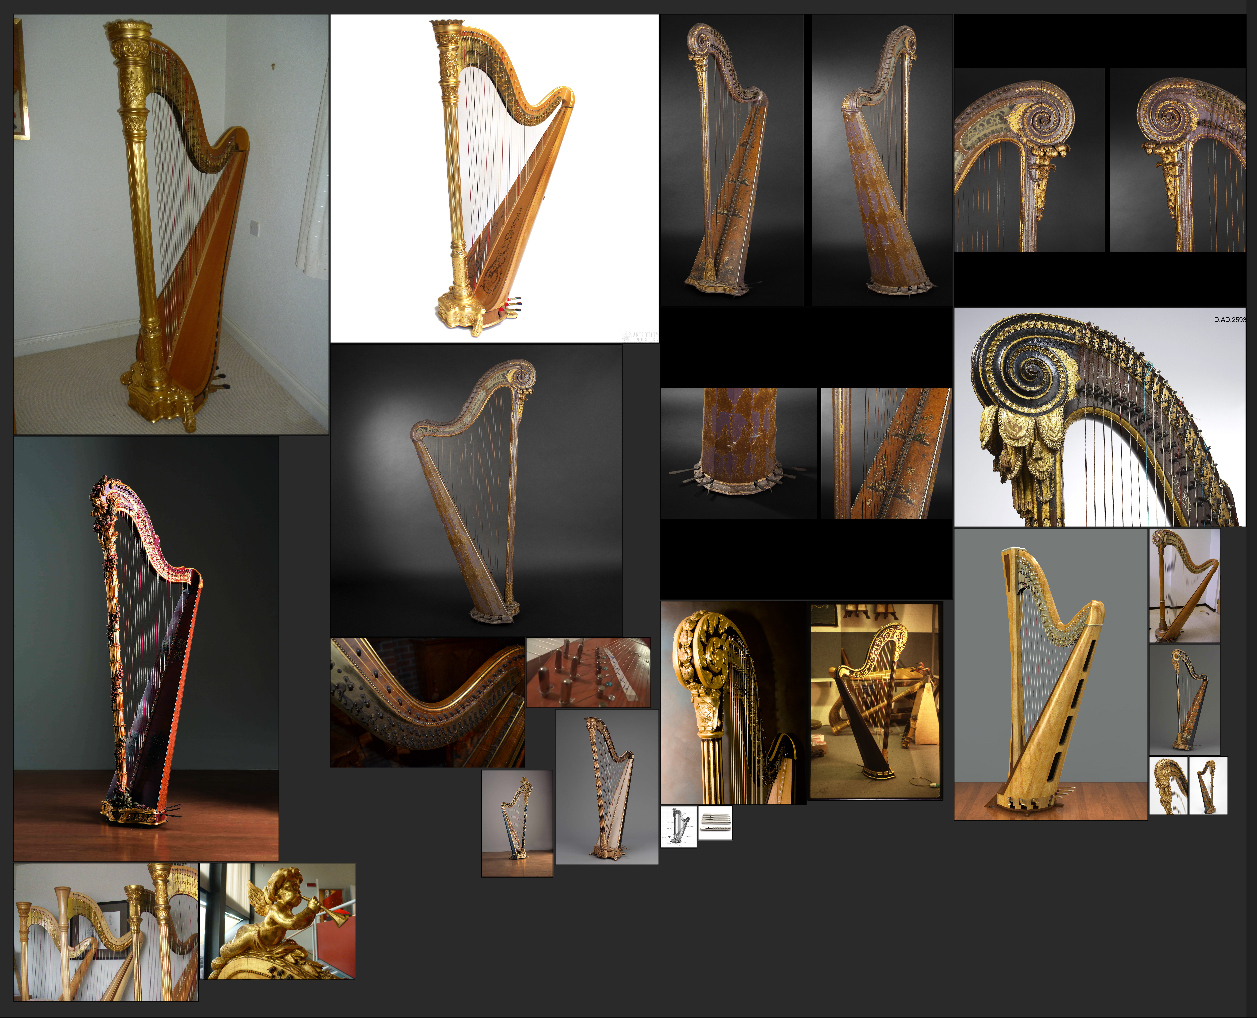 Artist in Residence] - Pedal Harp - Work in Progress [WIP